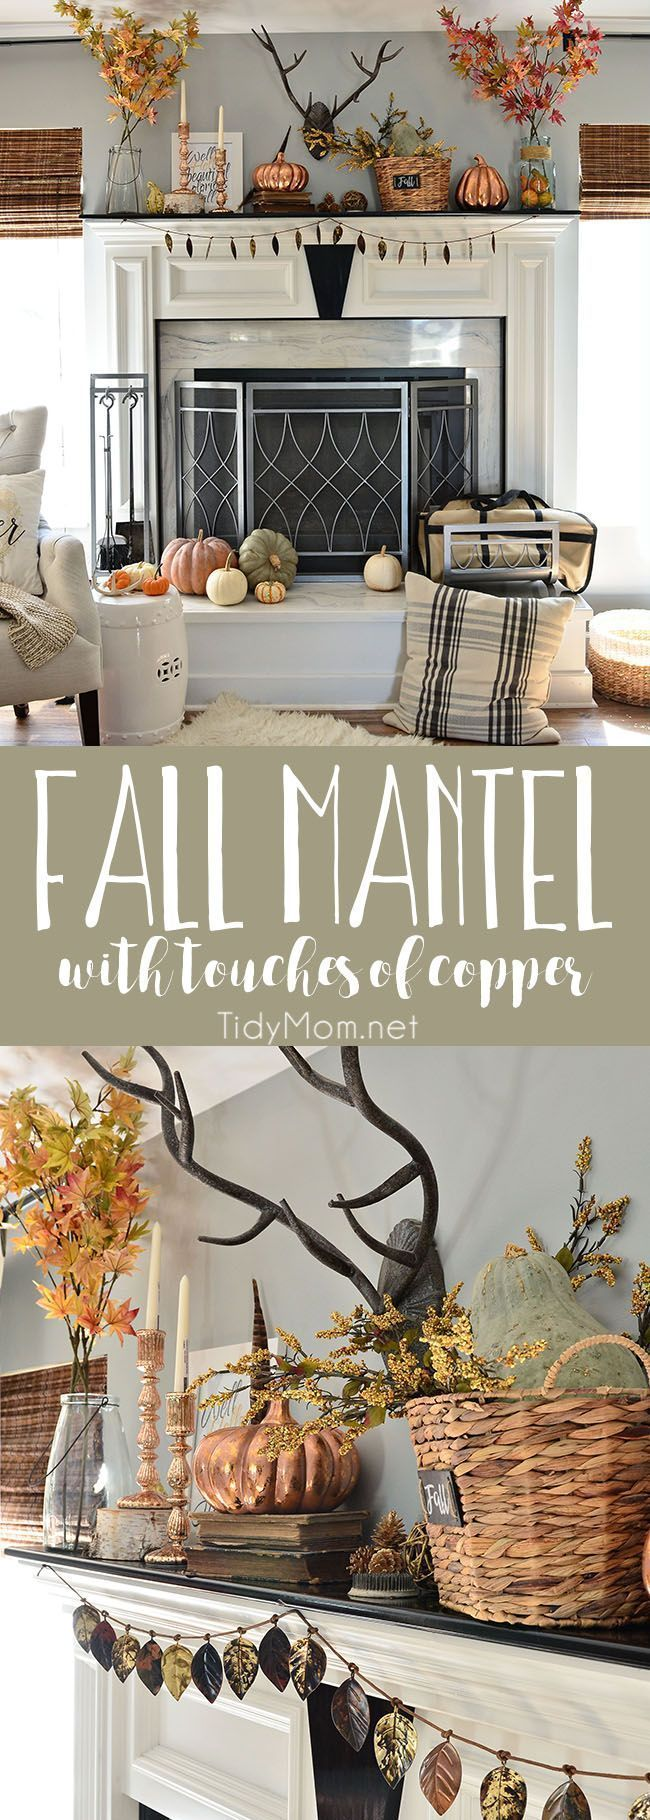 Fall Mantel with touches of copper and rosegold at http://TidyMom.net